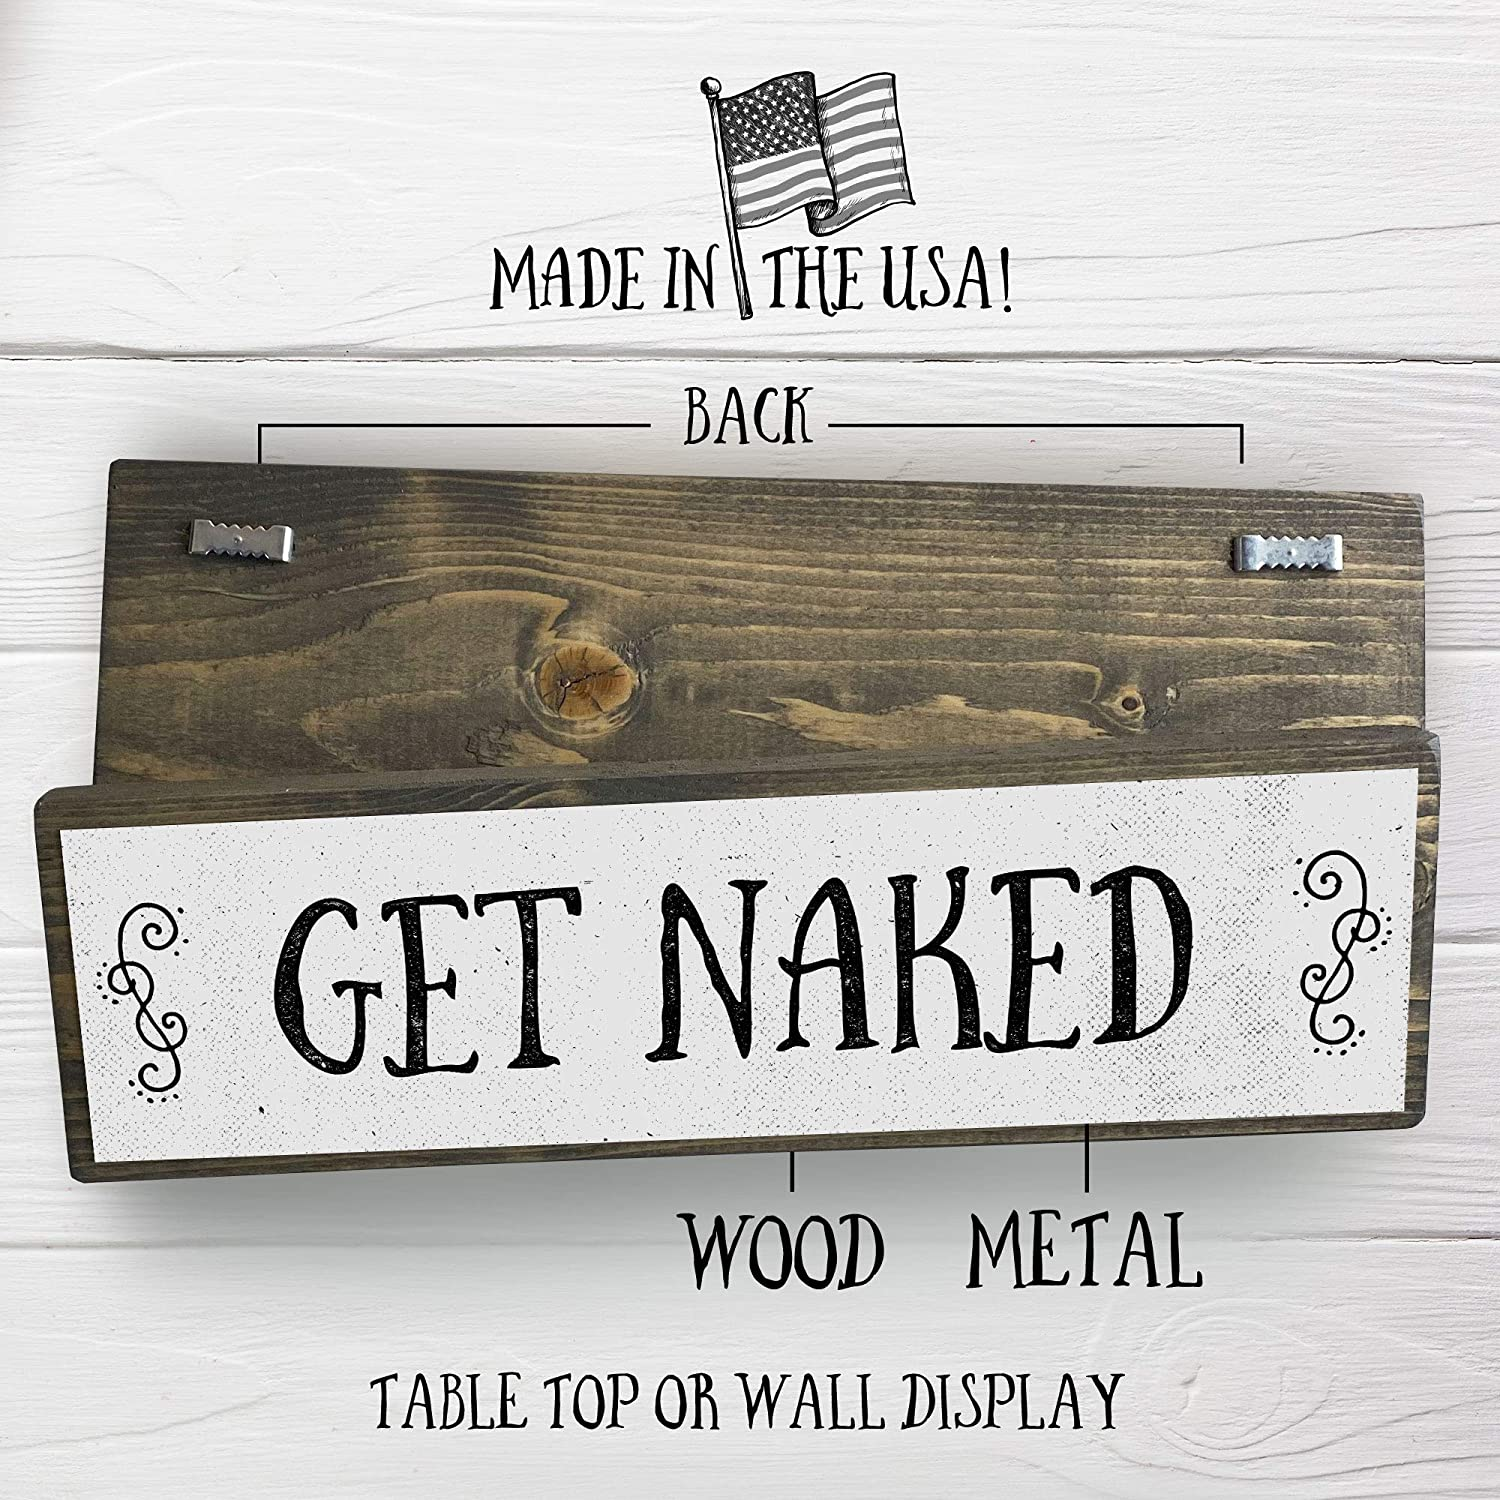 Wall Hanging or Free Standing Wood Sign Rustic Signs with Sayings 17x7 Inch Flinelife Vertical Get Naked Nice Butt Sign Wood Framed Bathroom Signs 1 Frame 2 Sided